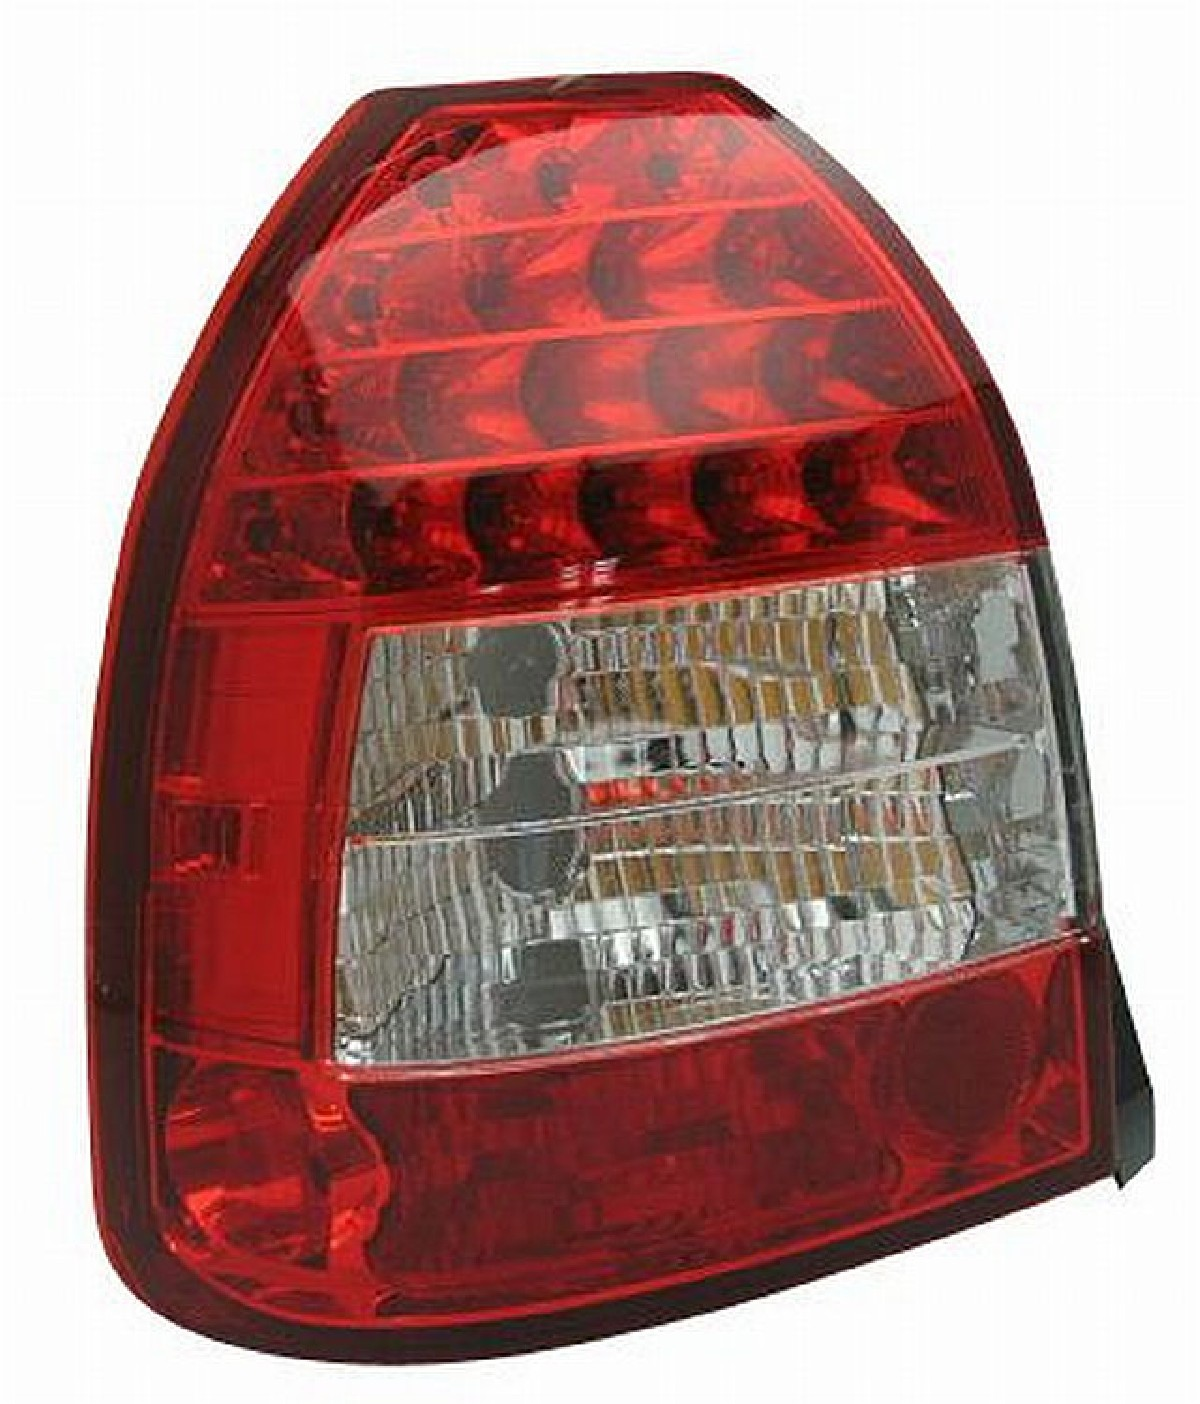 G3 LED Rückleuchten Honda Civic 96-00 3T Rot/Klar